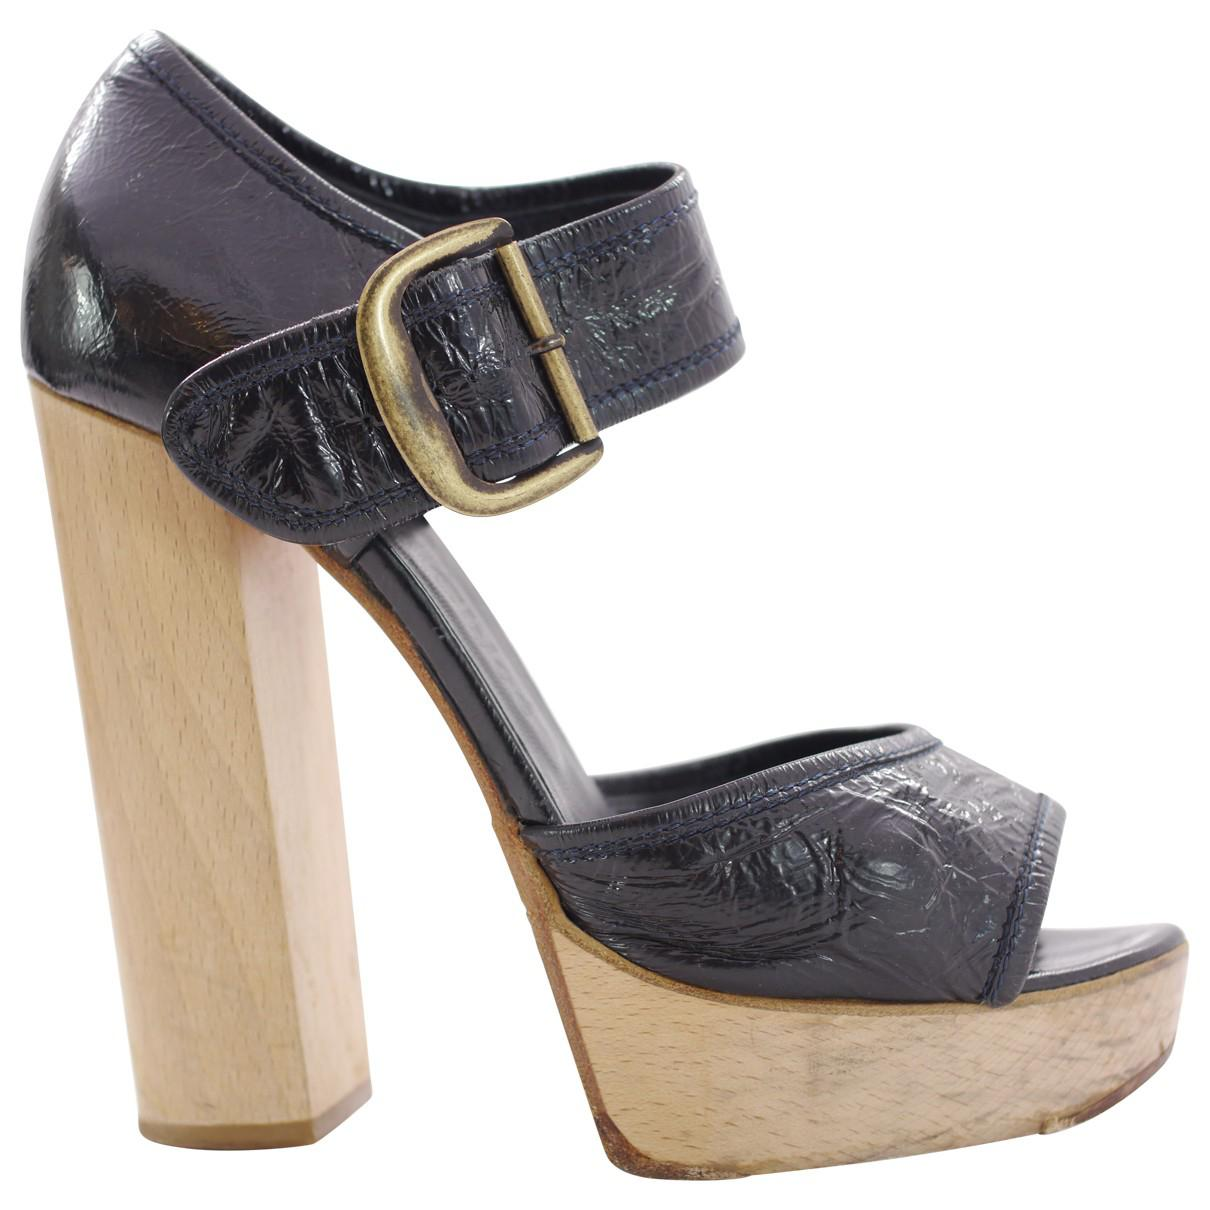 Pre-owned - Patent leather heels Chloé 3VivKydAe7